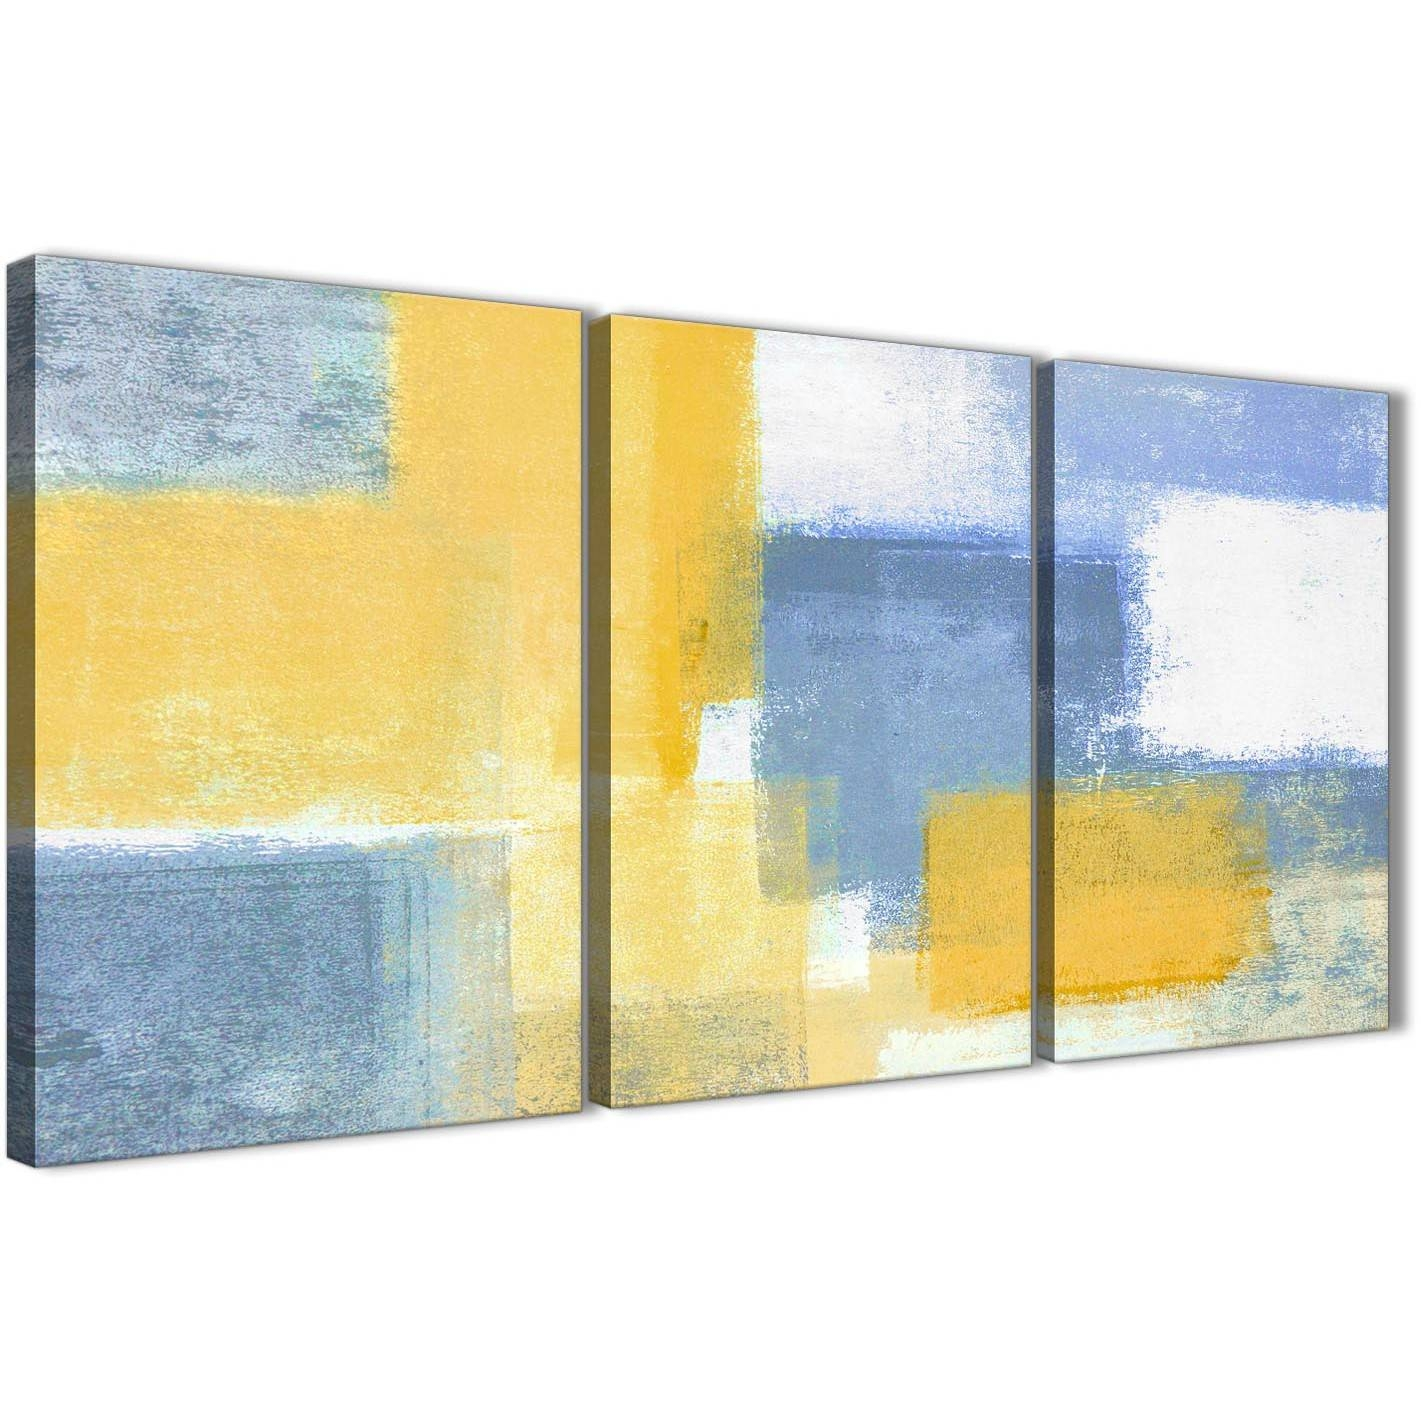 View Gallery of Yellow And Blue Wall Art (Showing 8 of 20 Photos)